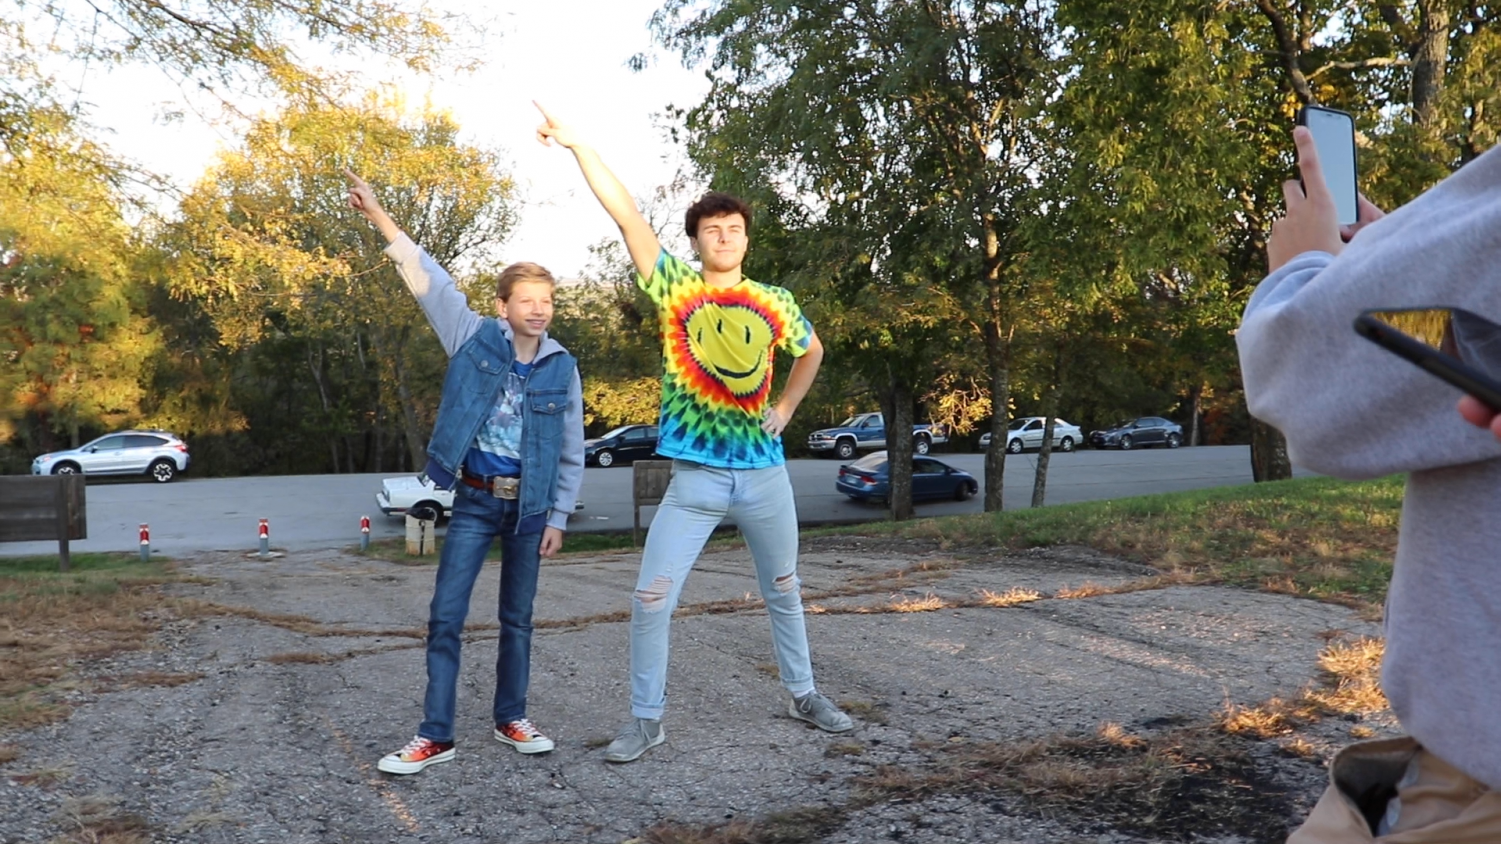 12-year-old country star Mason Ramsey strikes a pose with Sophomore Brendan Hulla at Wells Overlook Park. Hulla is a member of Sigma Phi Epsilon, one of the greek houses that won a social media contest to meet Ramsey. Hulla said that he and his friends like to strike this pose together in photos, so he was excited to have a celebrity take part in the inside joke.